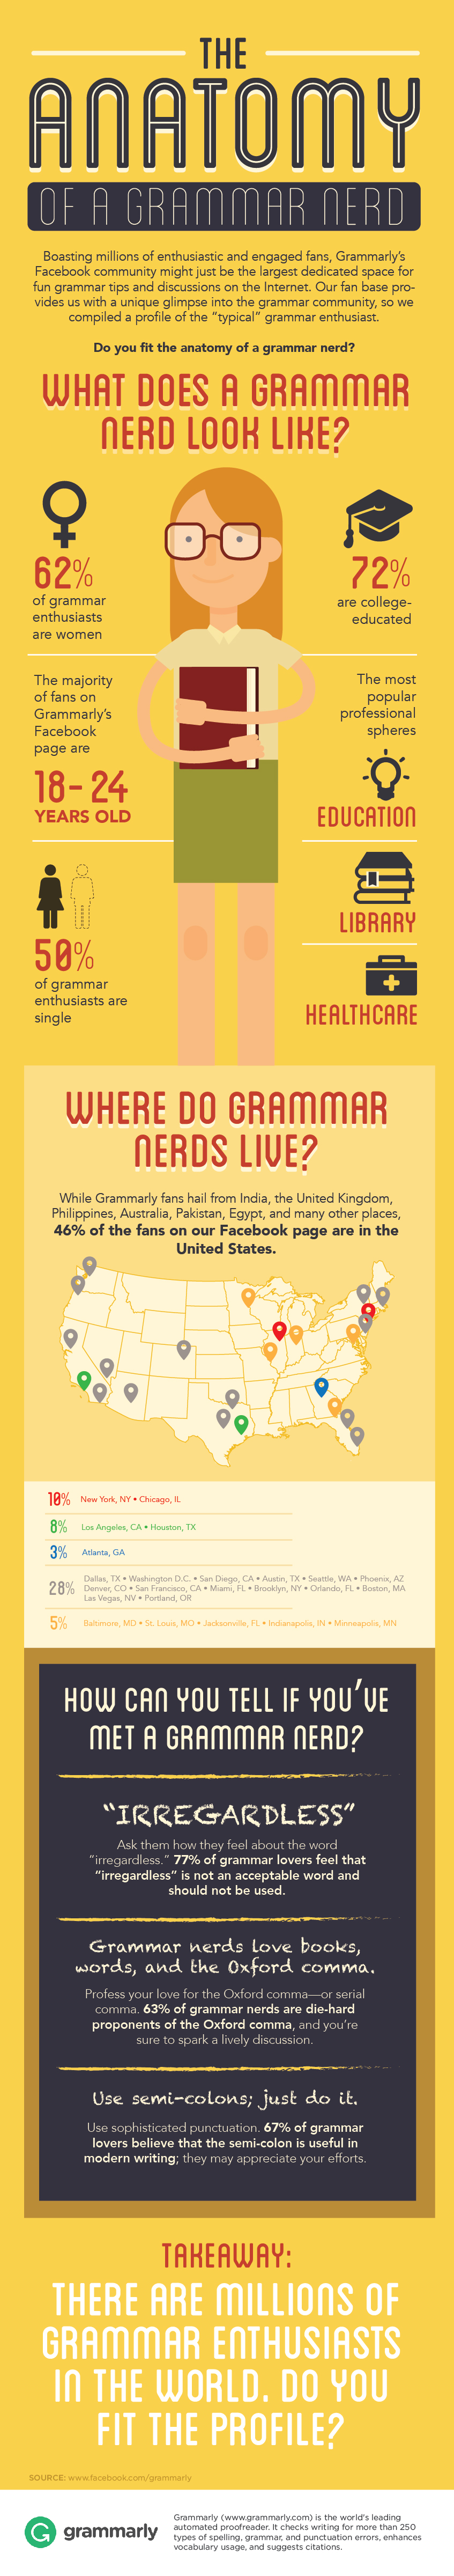 Anatomy of a Grammar Nerd Infographic